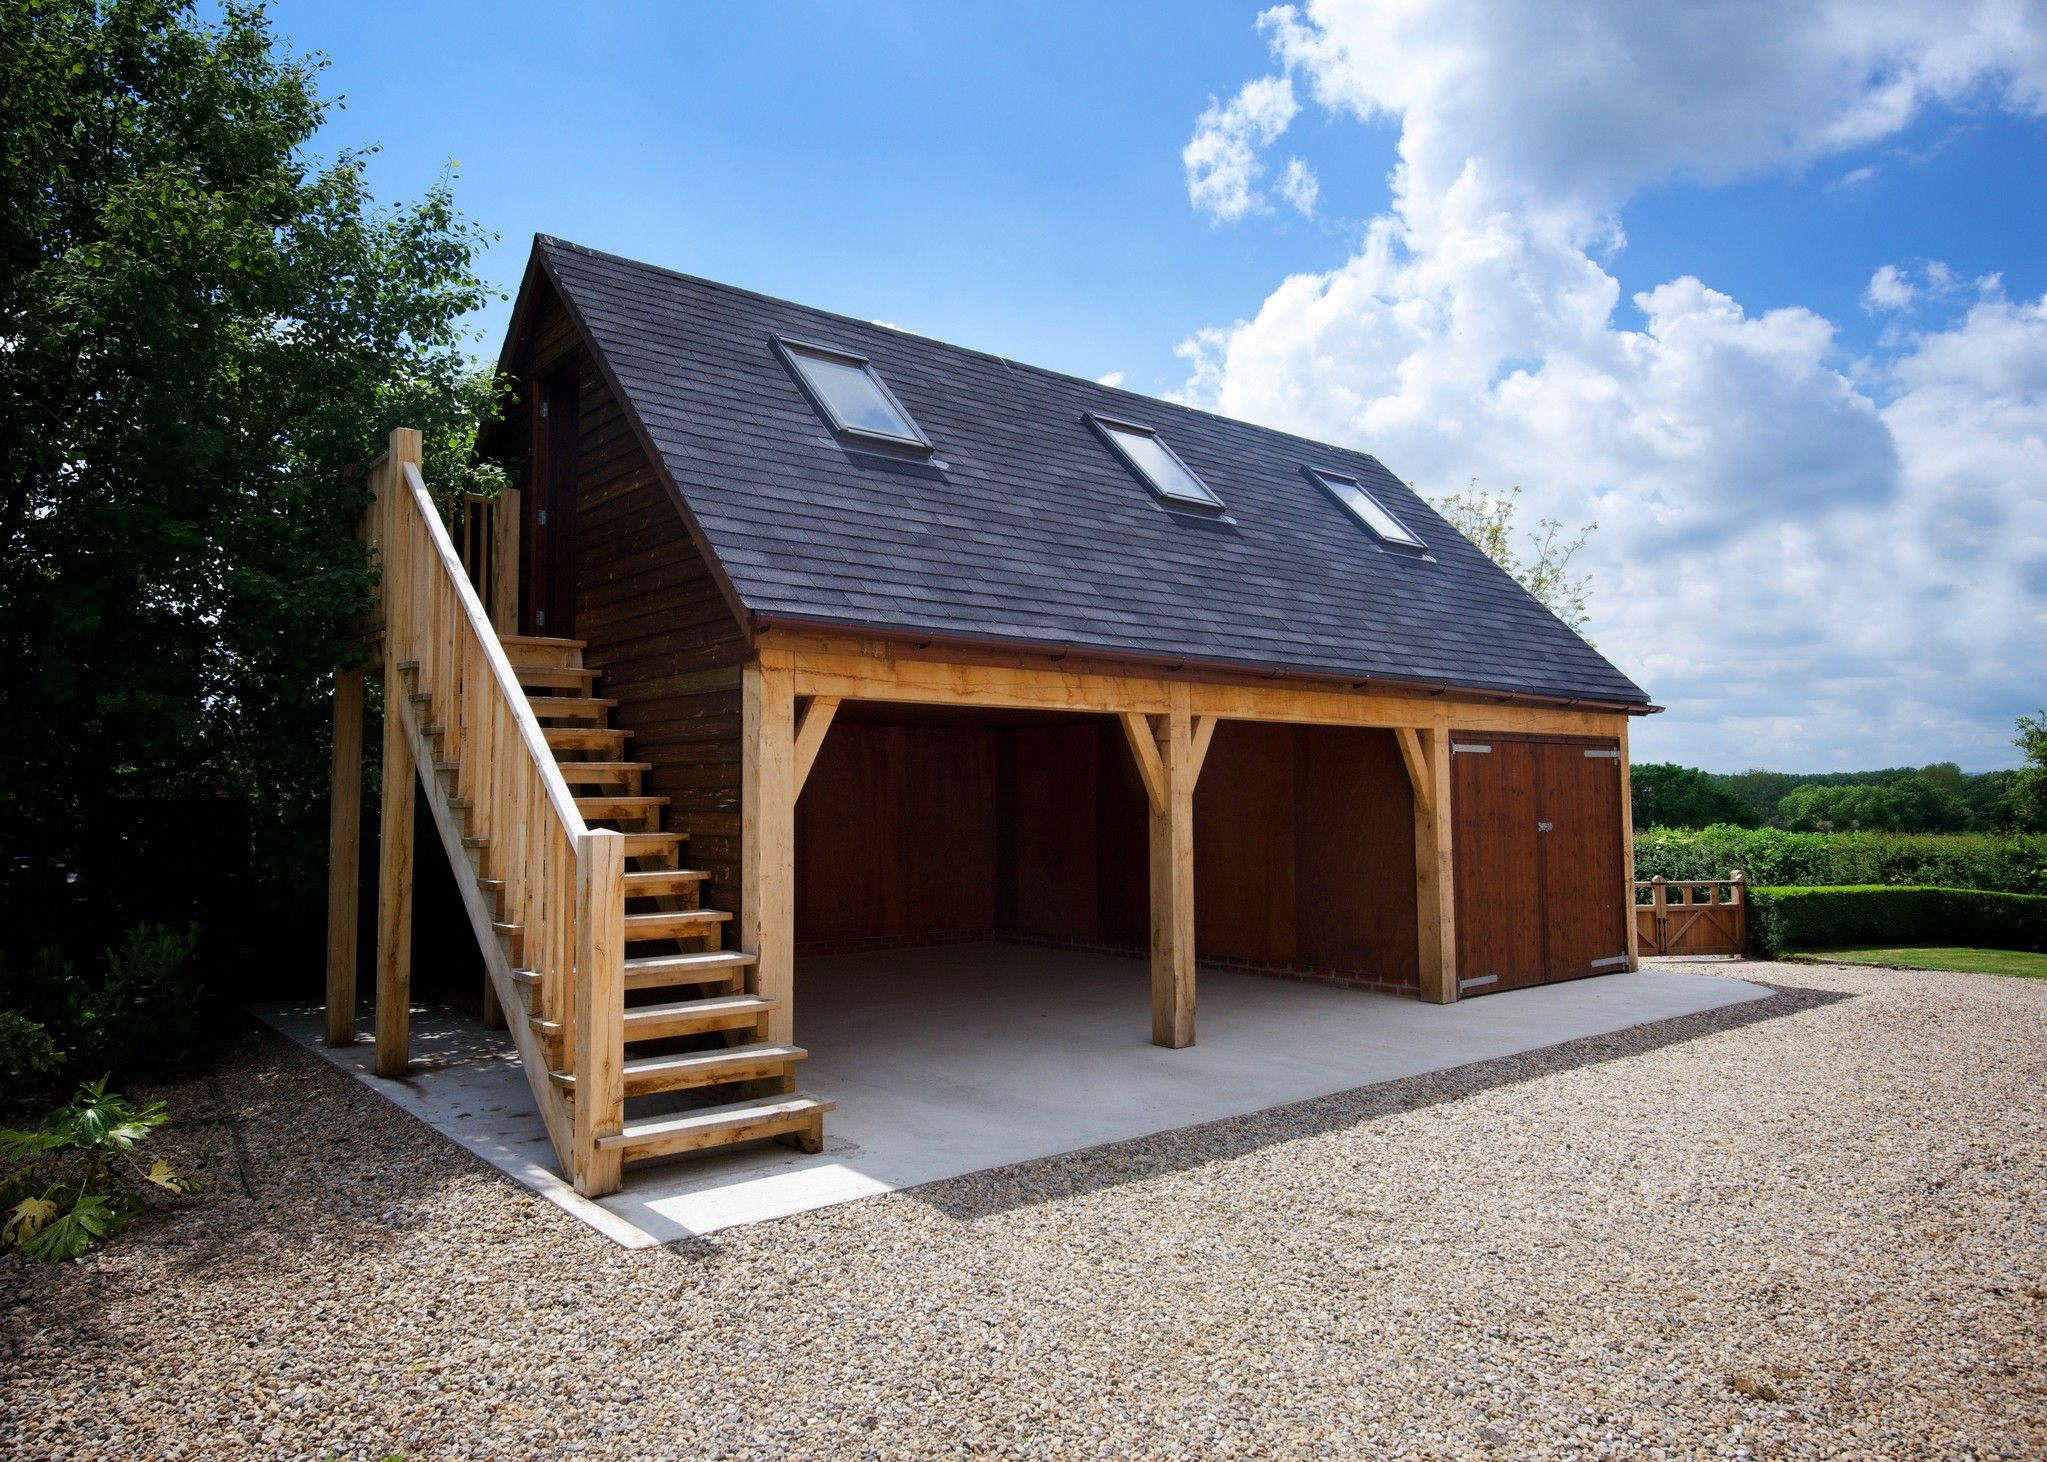 Discover How We Created A Bespoke Three Bay Timber Garage With An Additional Storage Room Above In 2020 Timber Garage Carport Designs Garage Guest House